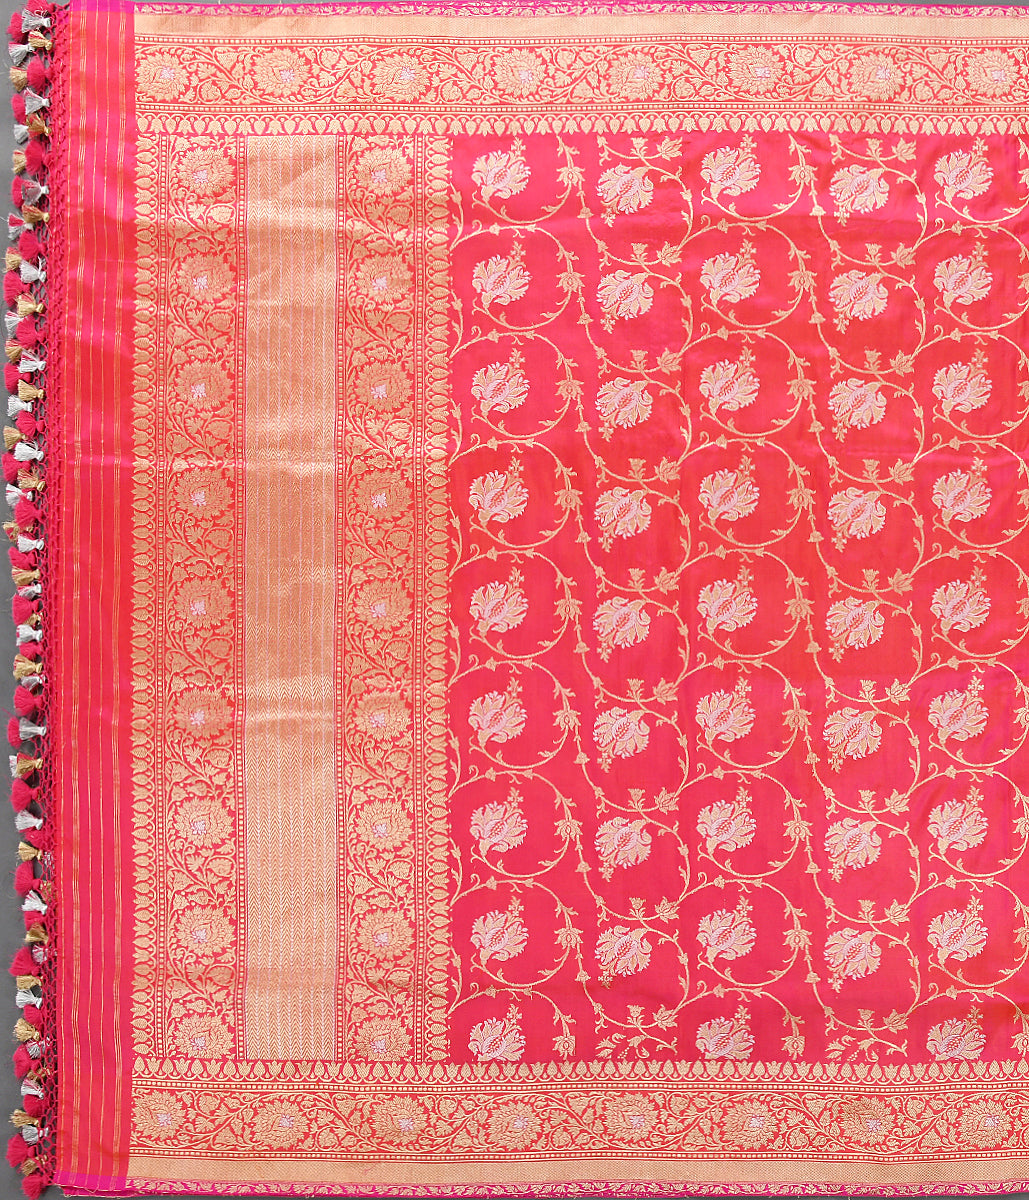 Handwoven Pink and Orange Dual Tone Kadhwa Jangla Dupatta